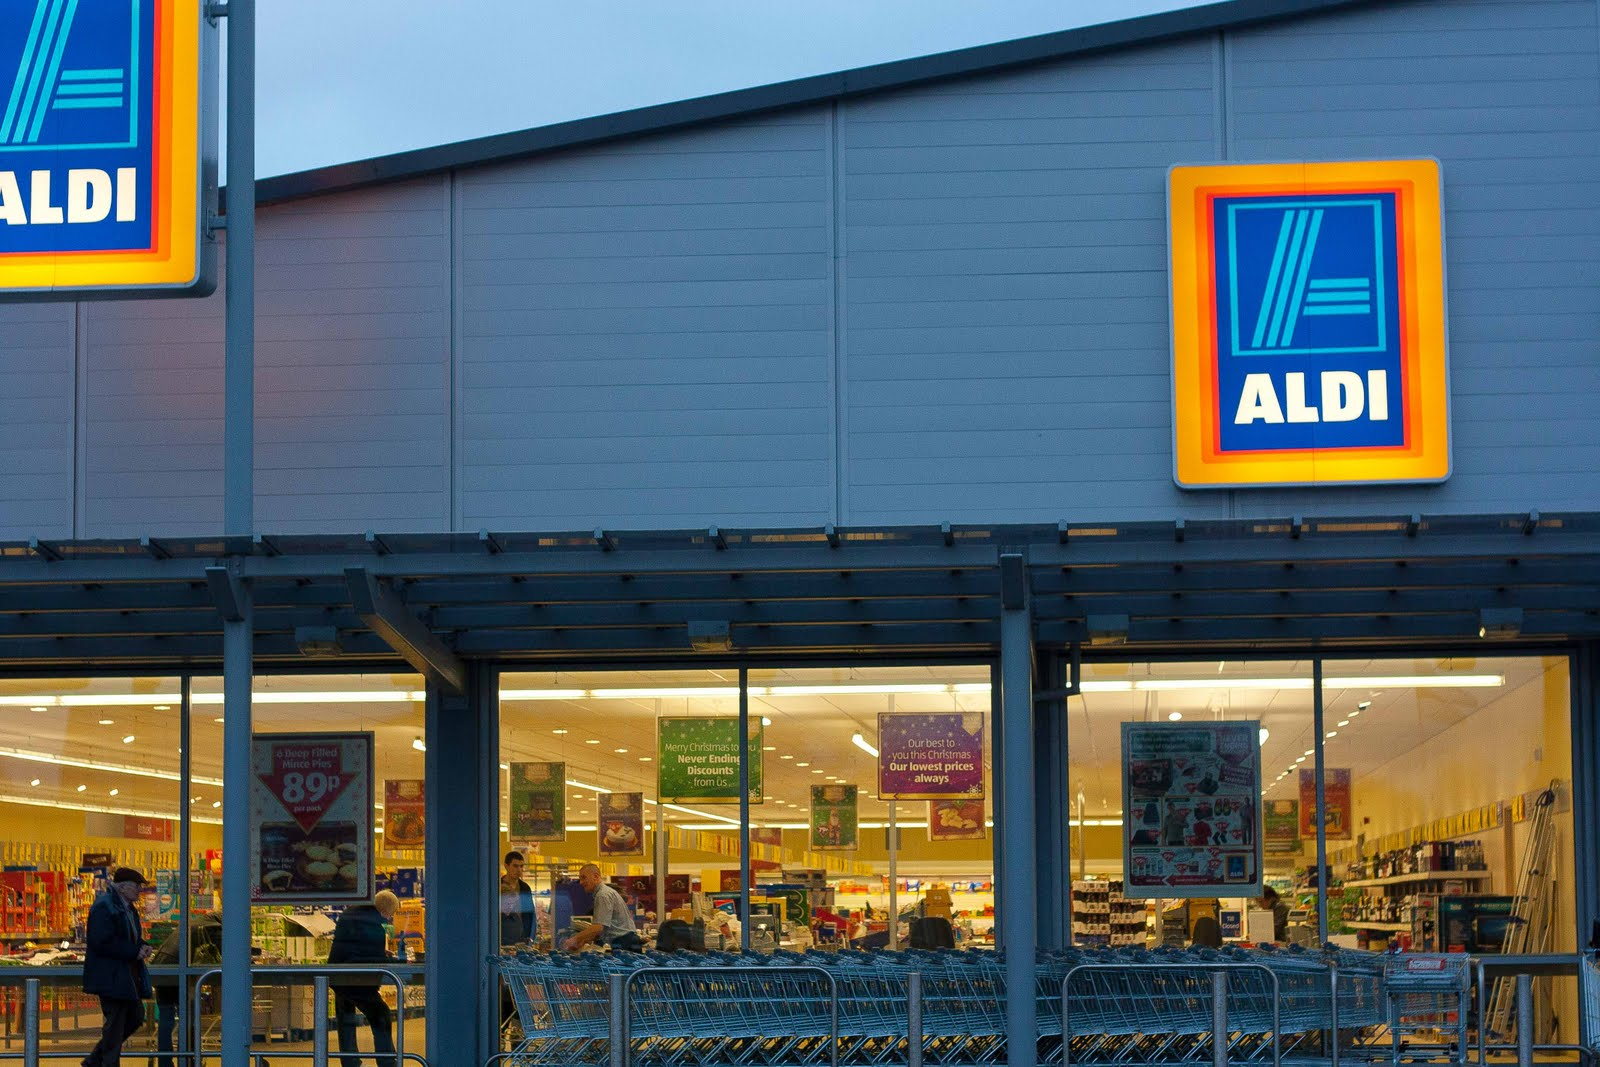 Used Cars Louisville Ky >> Aldi to go Full Organic, Bans Pesticides and Rivals Whole Foods as Healthiest Grocery Store